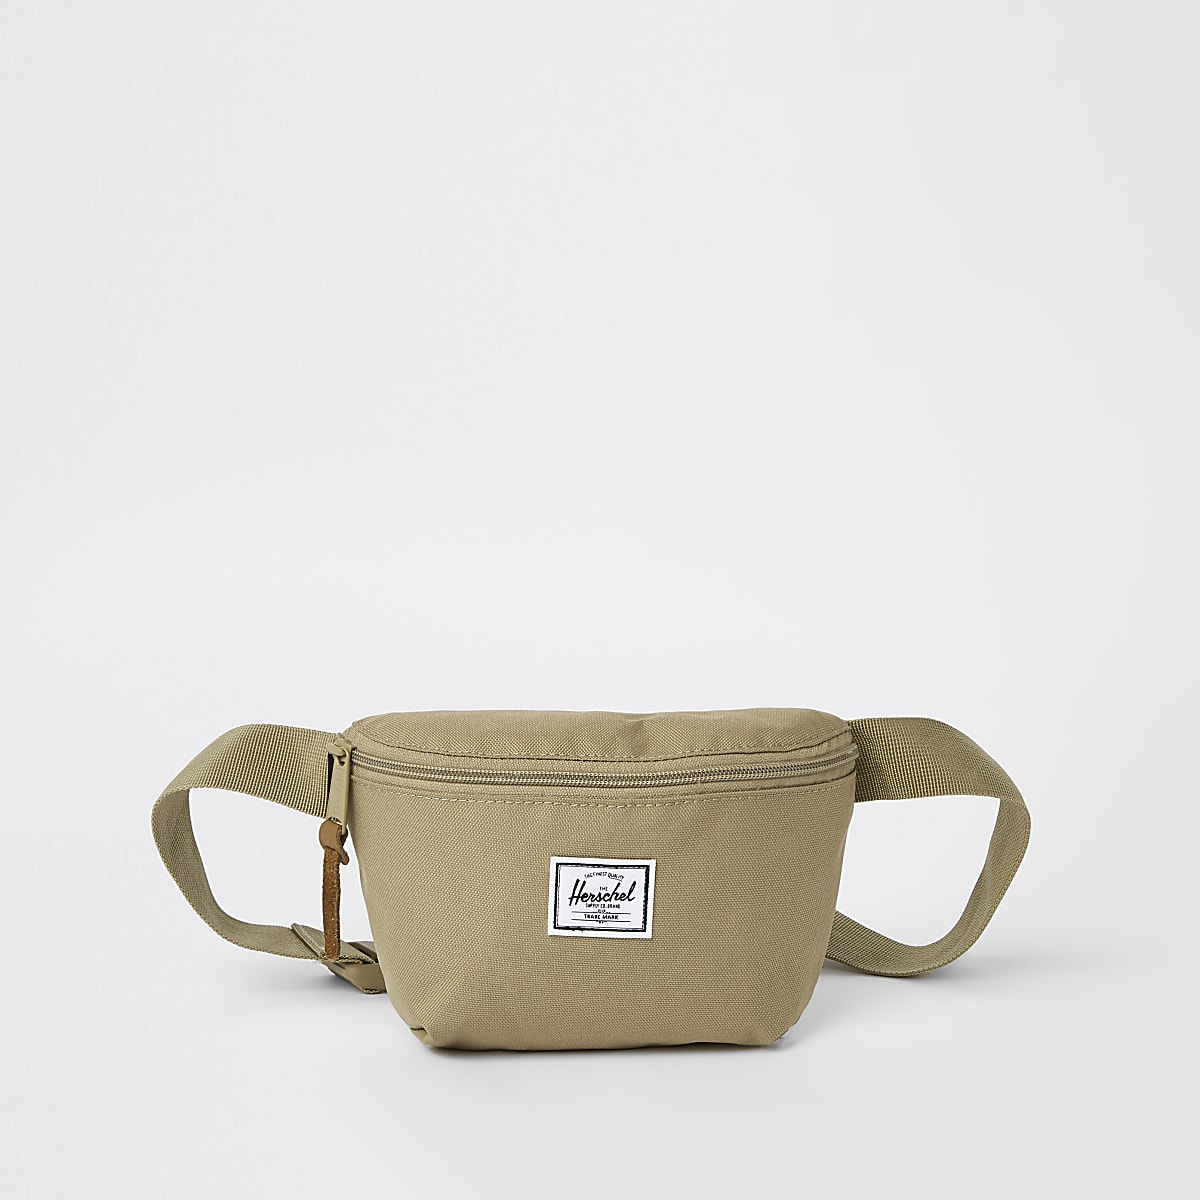 Herschel grey Fourteen cross body bag